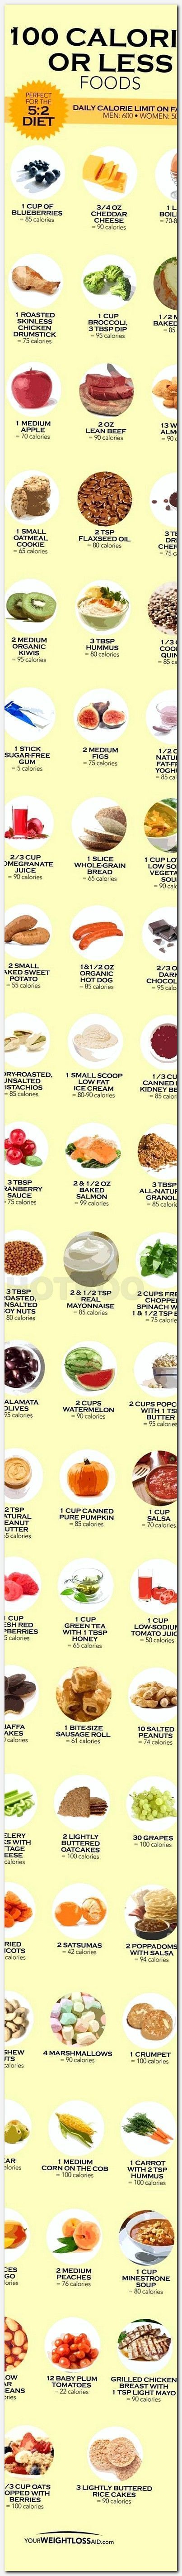 Does the body burn fat or muscle first image 3